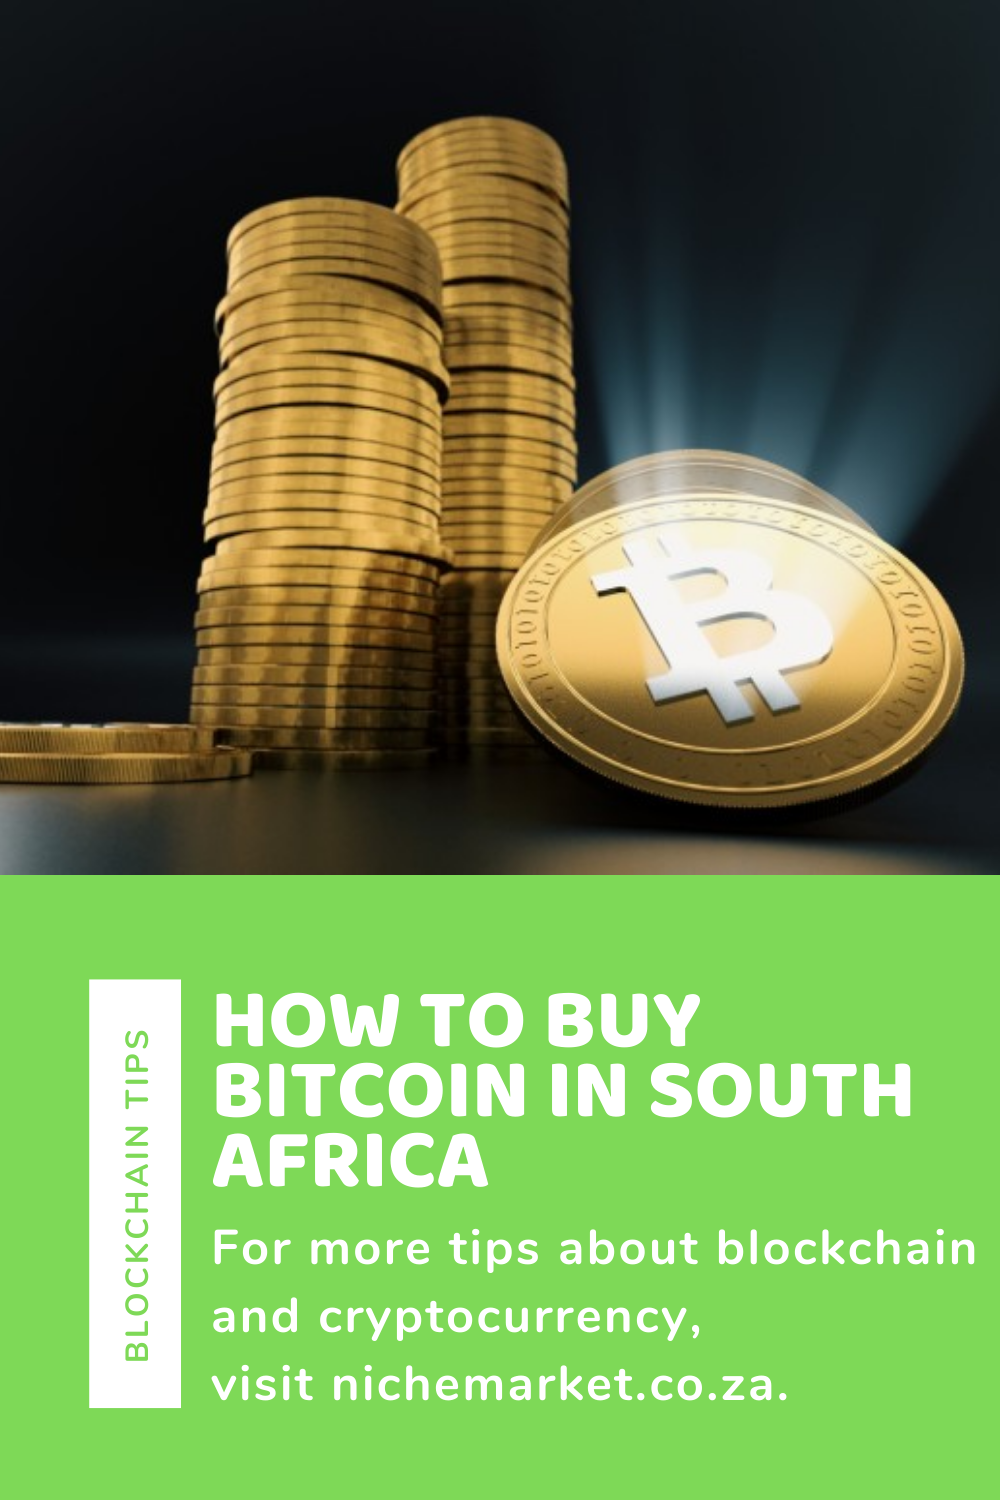 How To Buy Bitcoin In South Africa Buy Bitcoin Blockchain Cryptocurrency Bitcoin